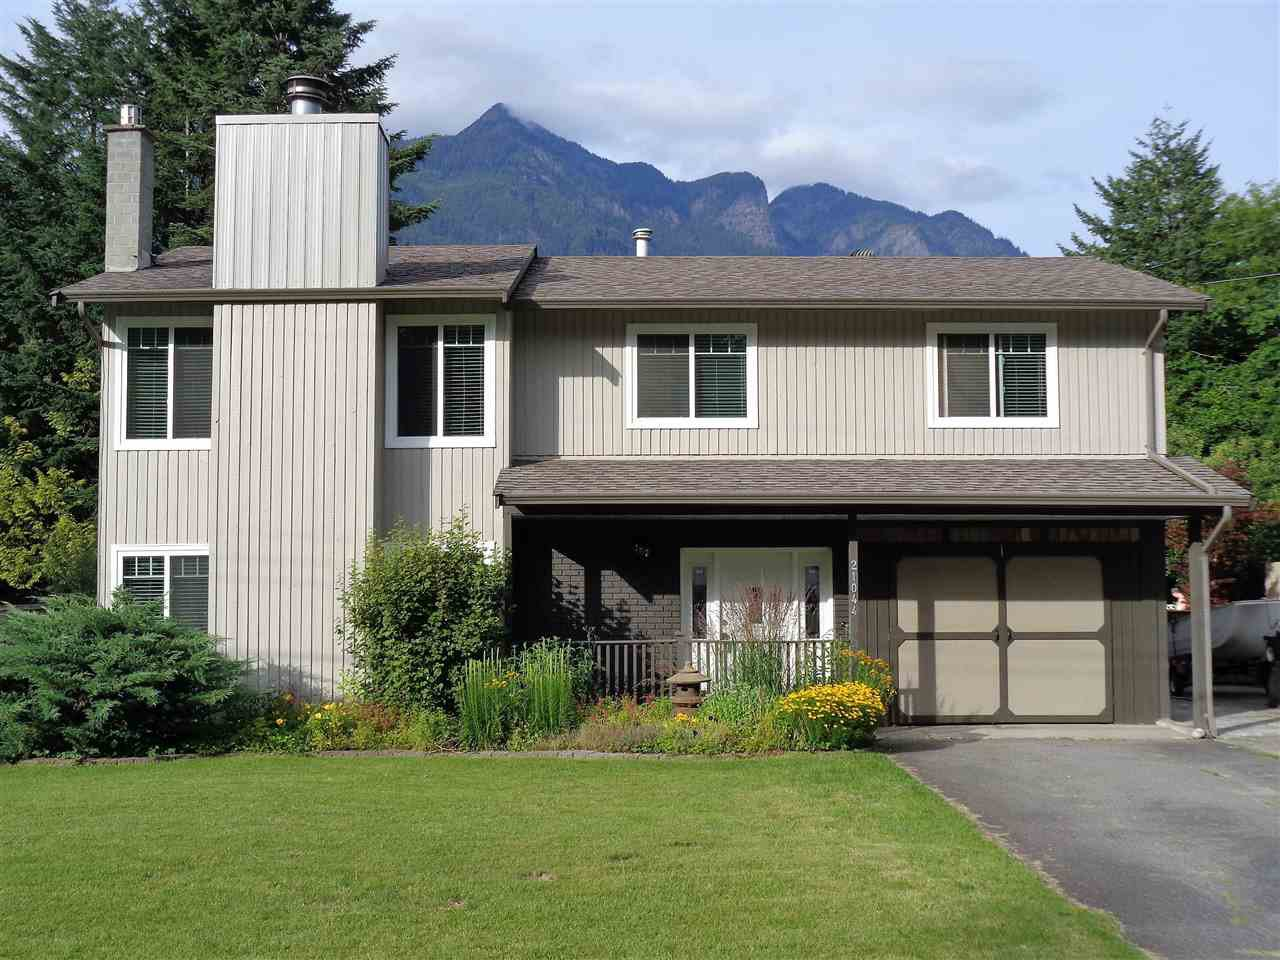 Main Photo: 21044 RIVERVIEW Drive in Hope: Hope Kawkawa Lake House for sale : MLS®# R2474466